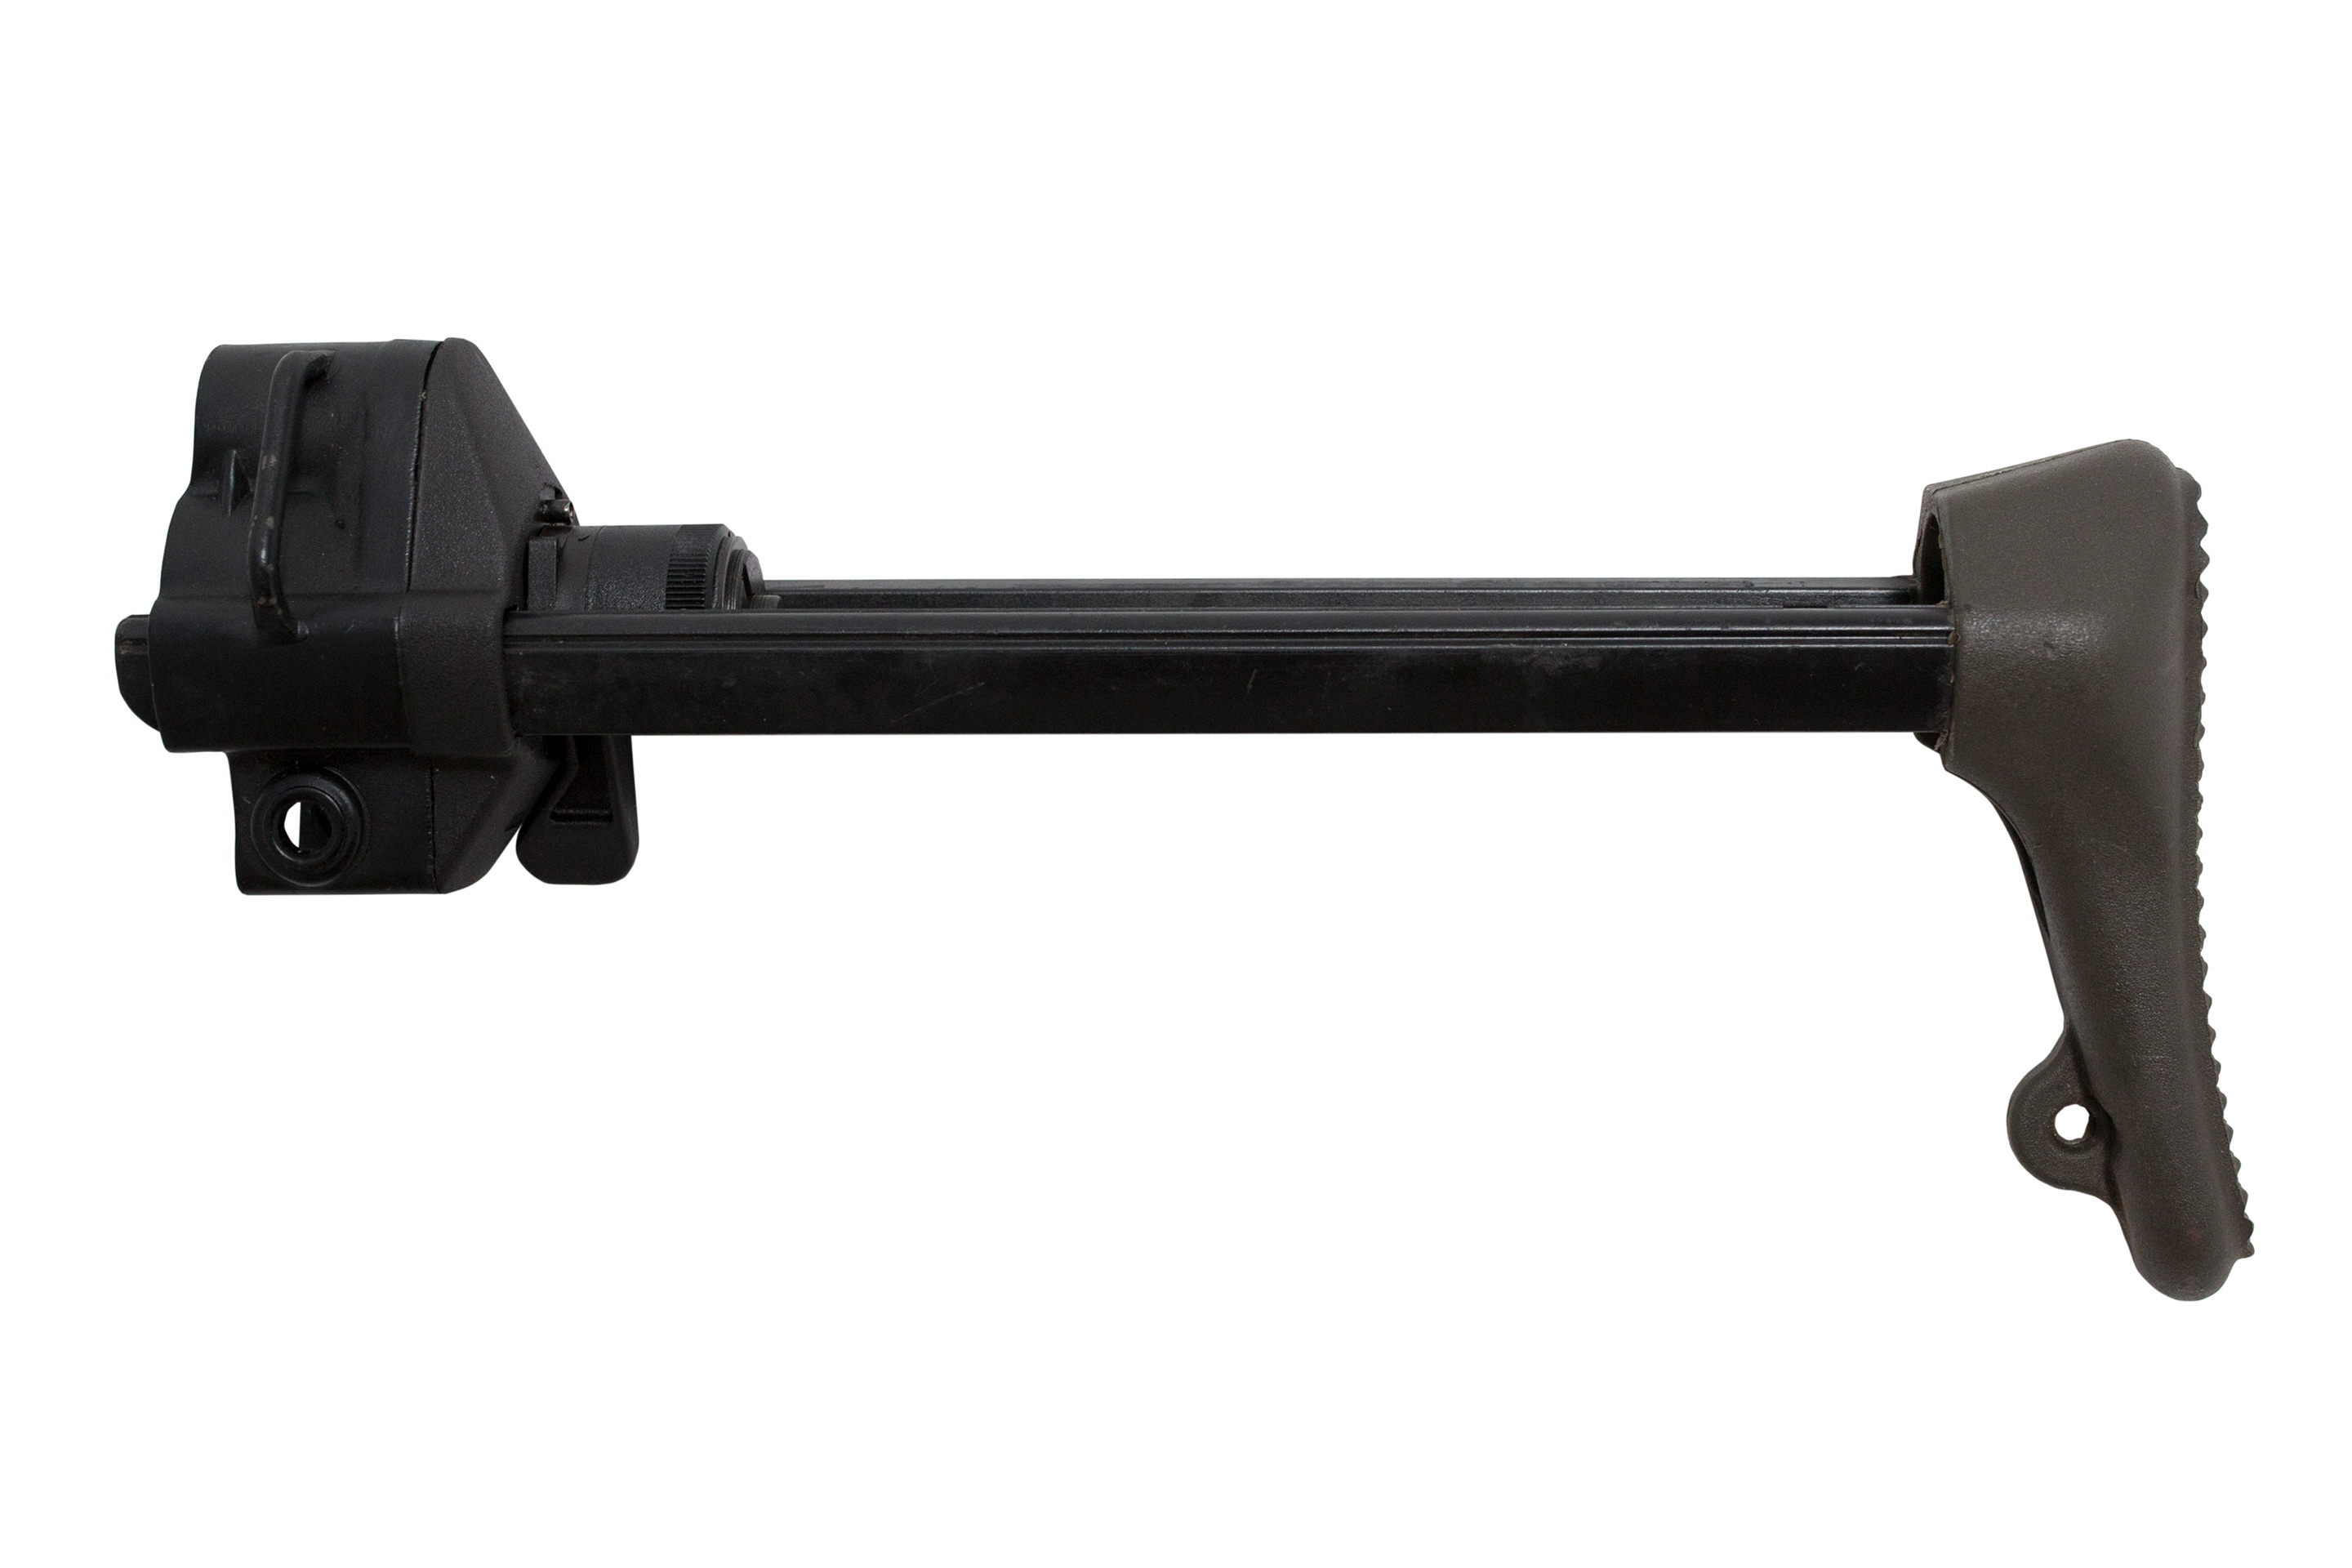 MKE 5.56 Collapsible Buffered Stock (OD Green)